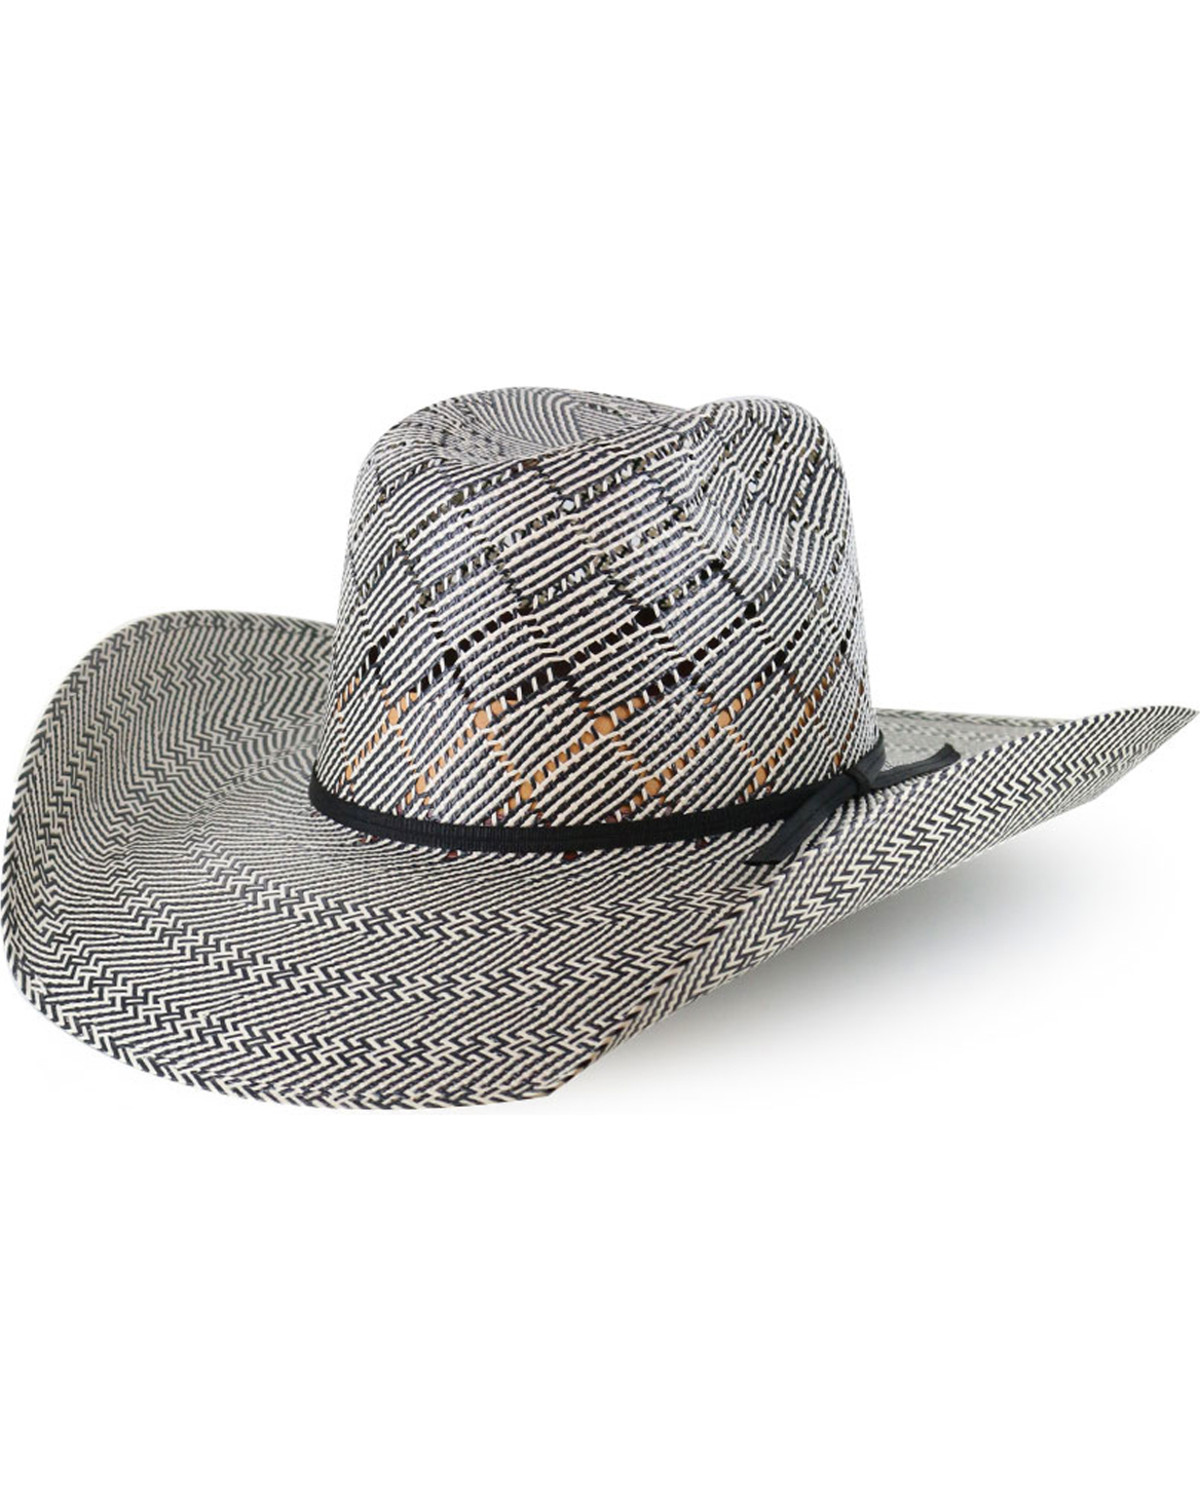 Cody James Men S 50x Vented Straw Cowboy Hat Sheplers 097bc5496dcd